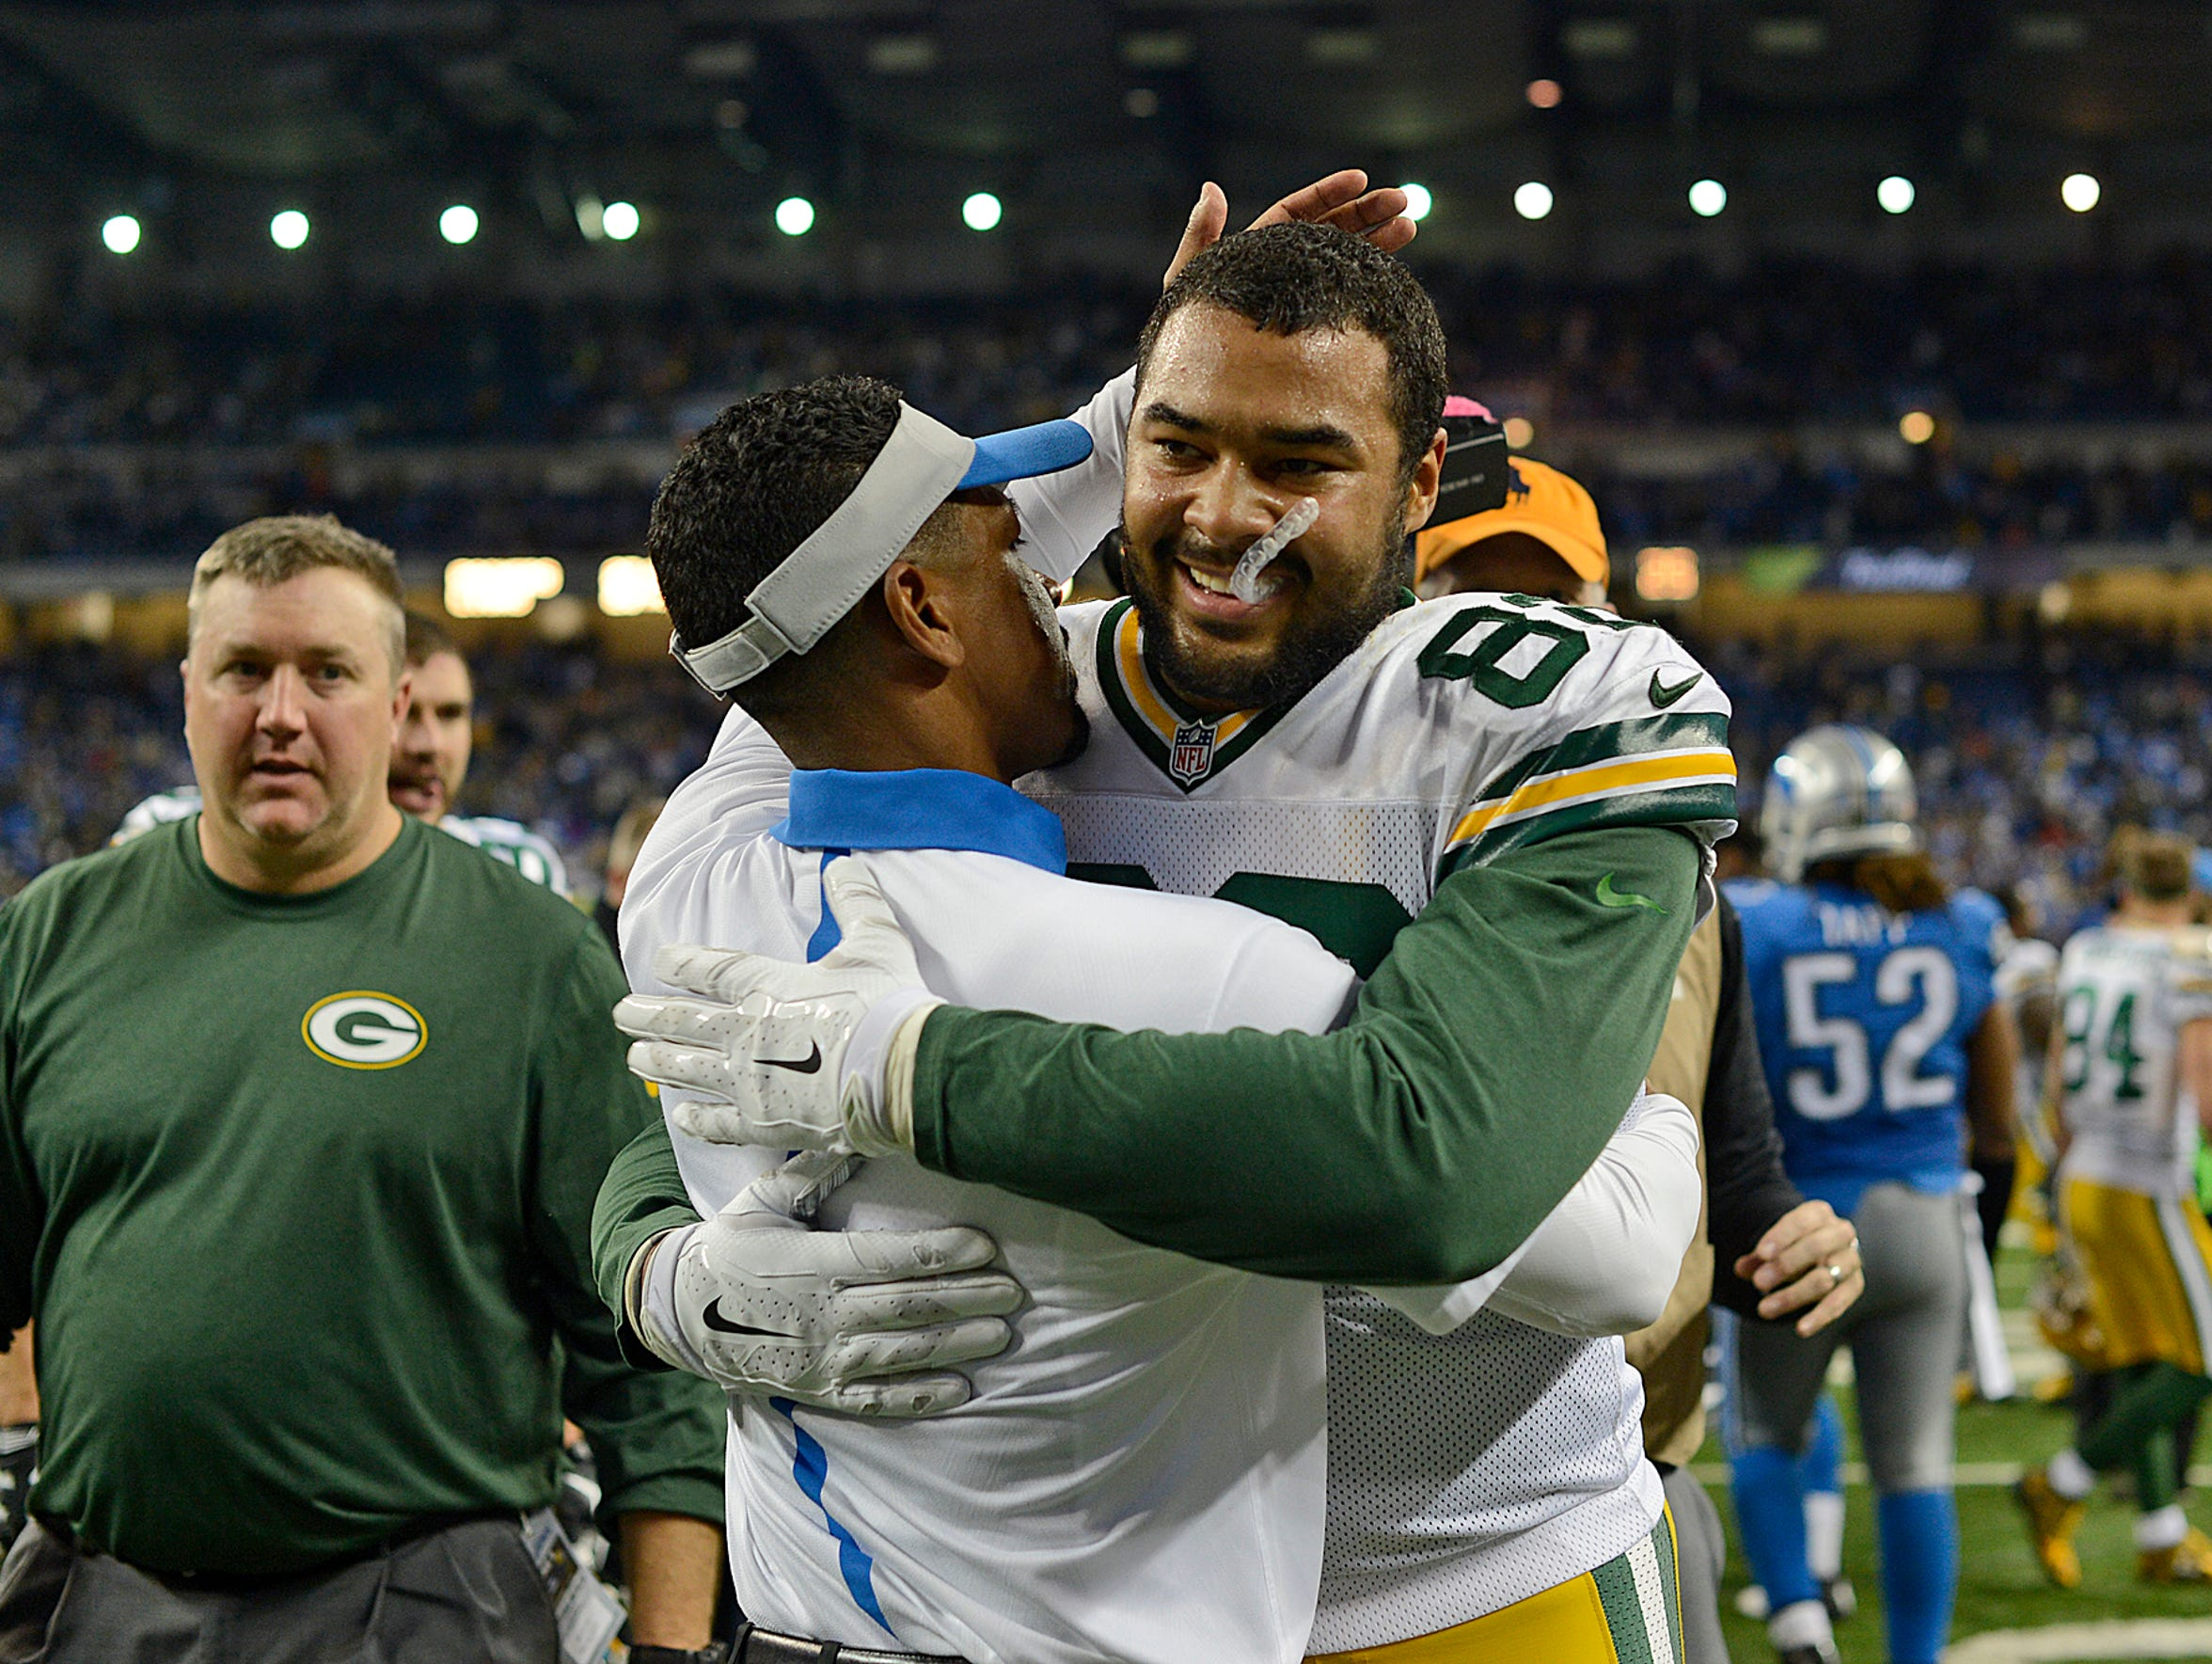 Green Bay Packers tight end Richard Rodgers gets a